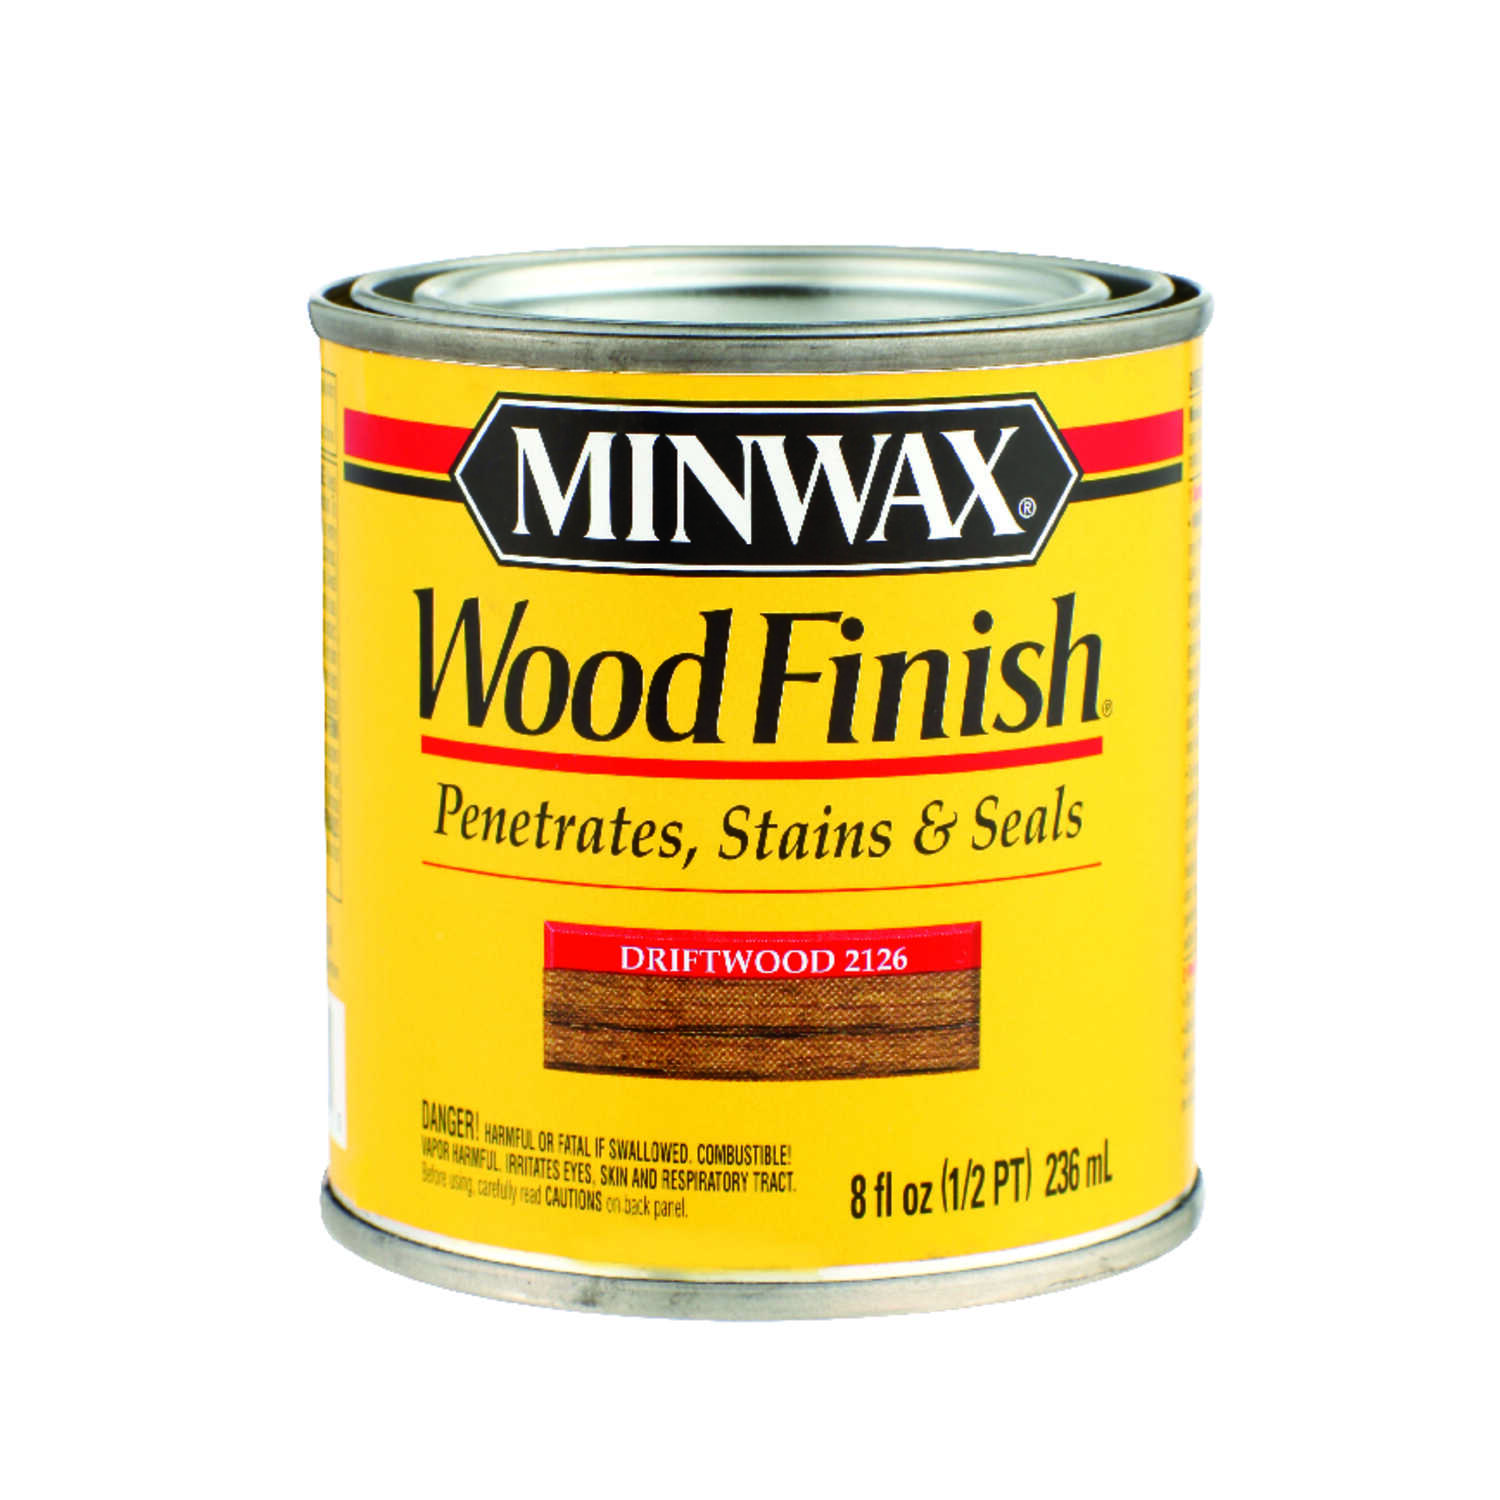 Minwax  Wood Finish  Semi-Transparent  Driftwood  Oil-Based  Wood Stain  0.5 pt.